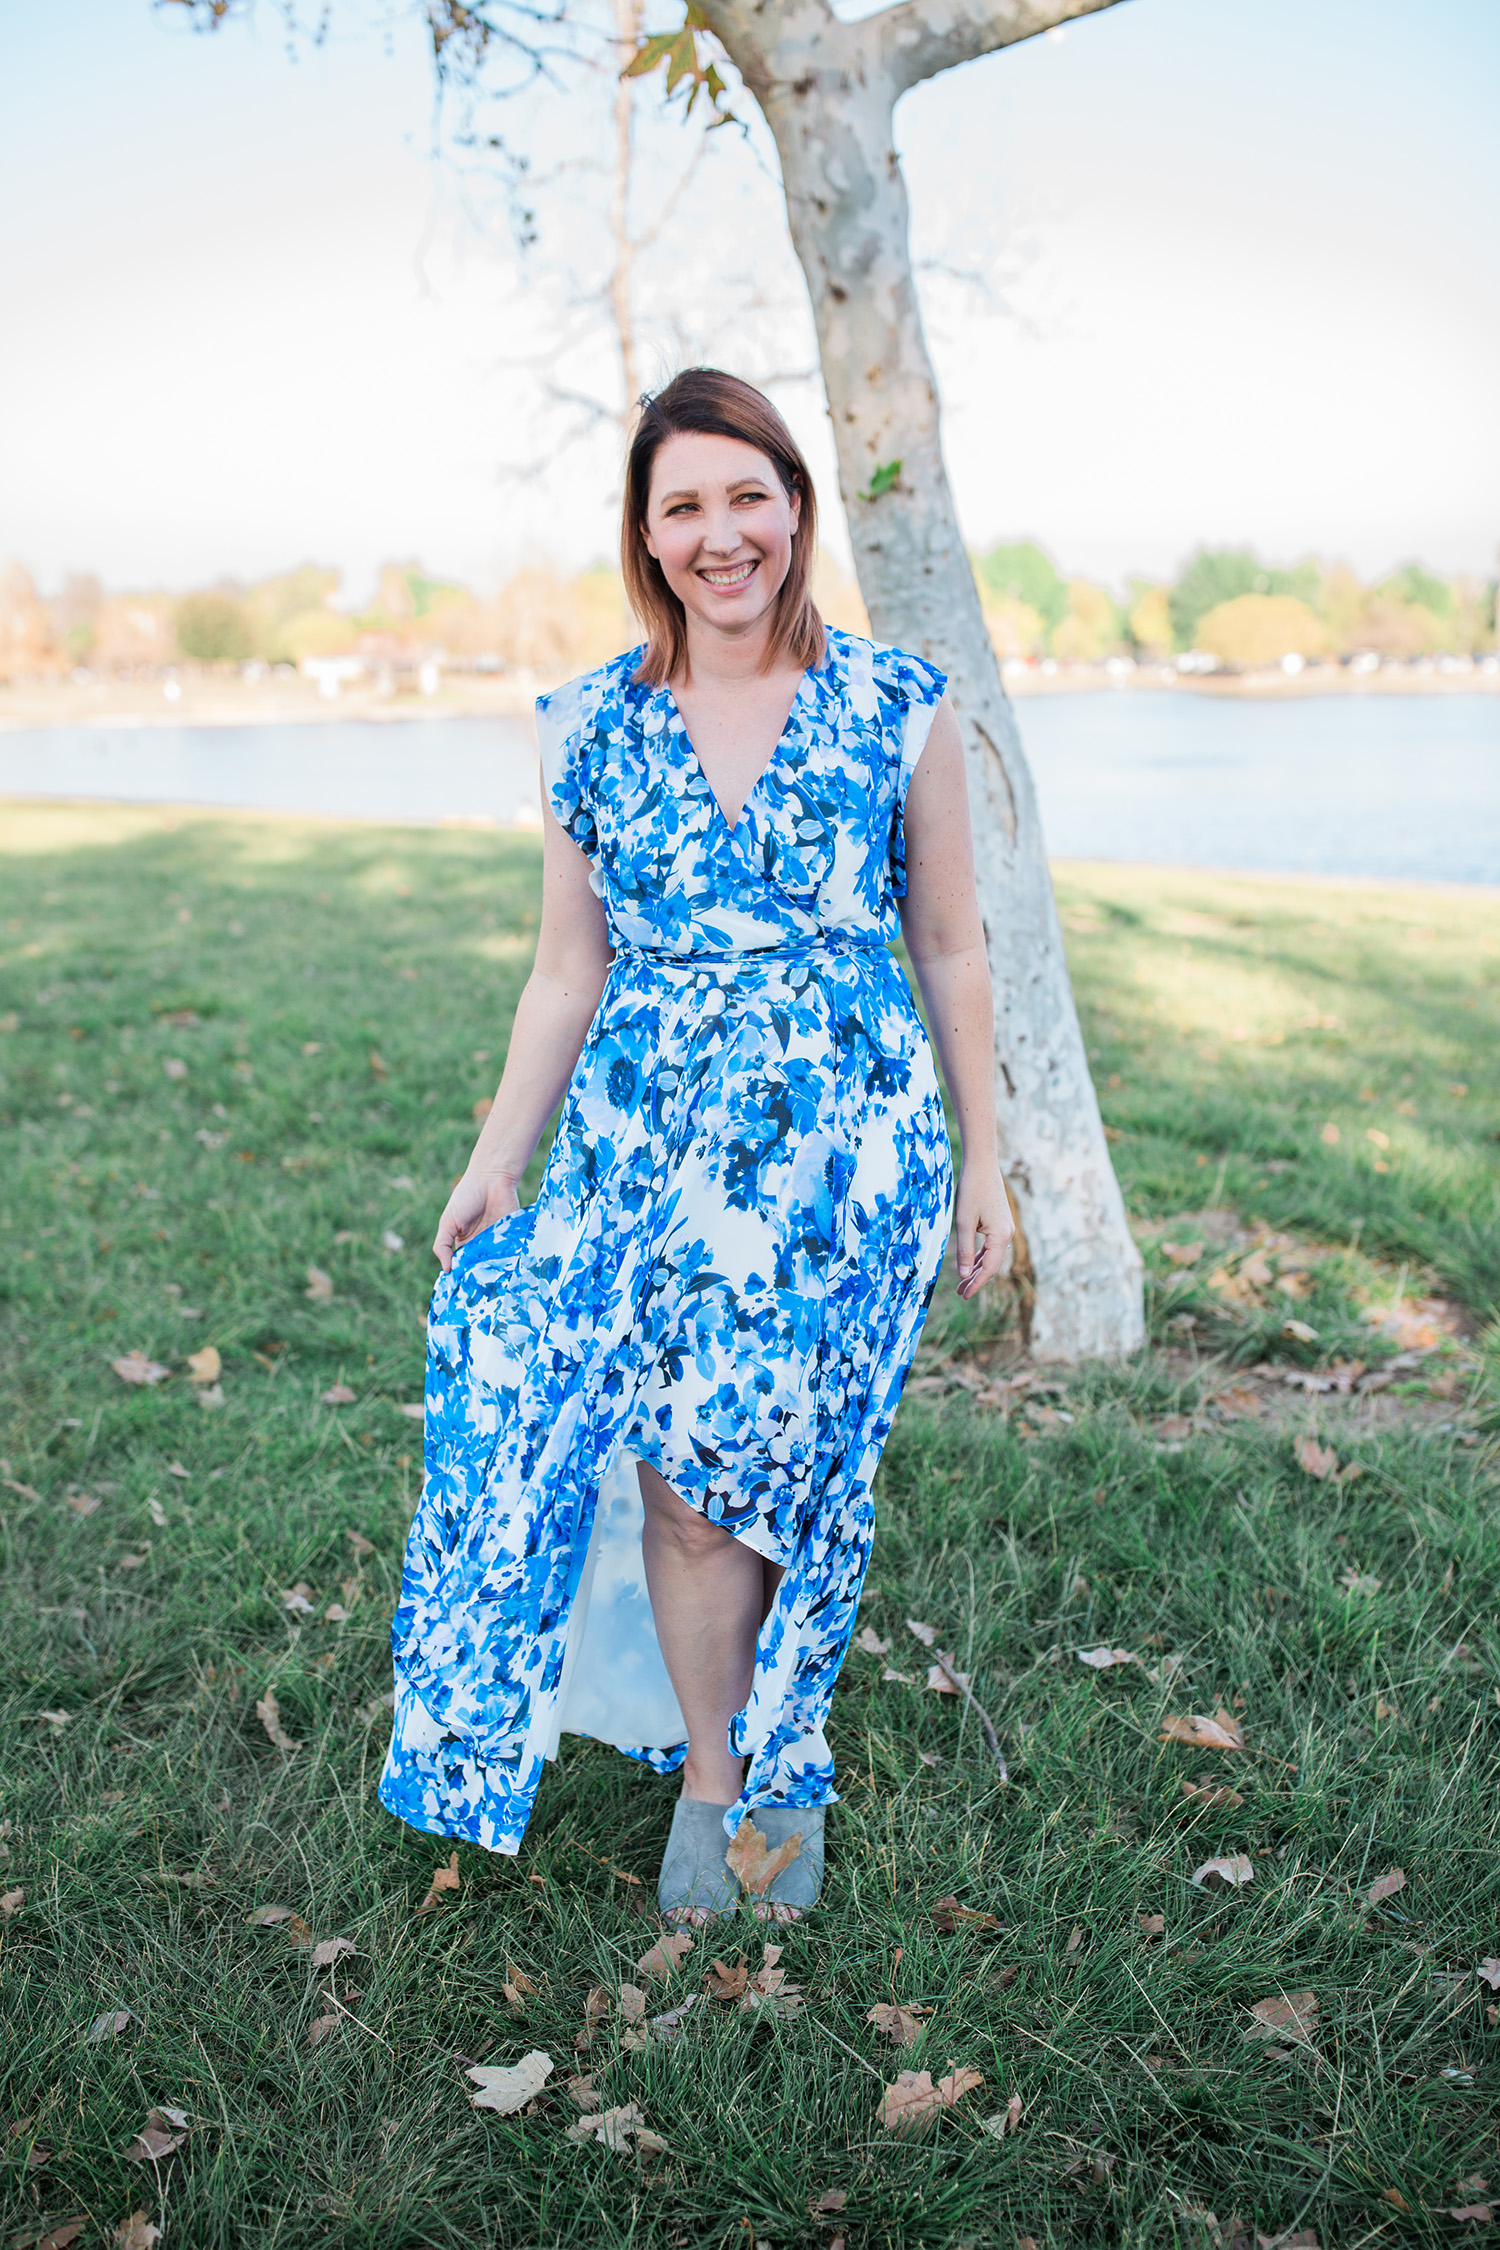 This blue floral dress is perfect for spring!